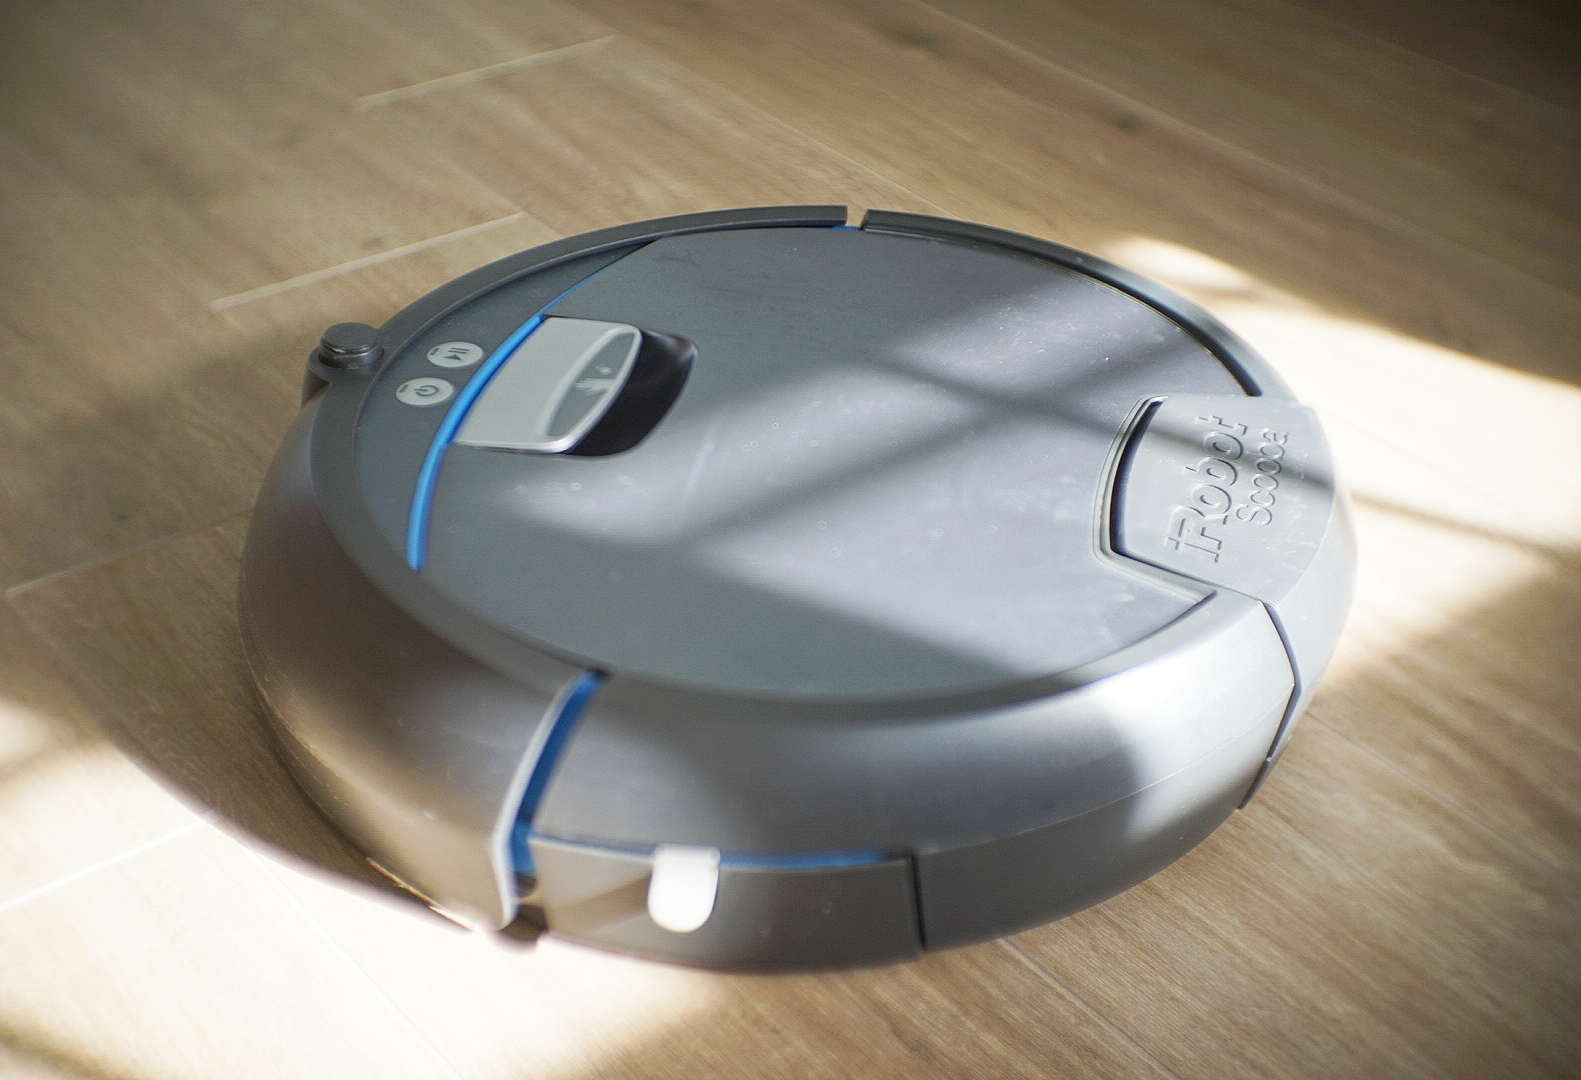 The iRobot Scooba does not have artificial intelligence, but it's smart to use it to scrub your floors for you.